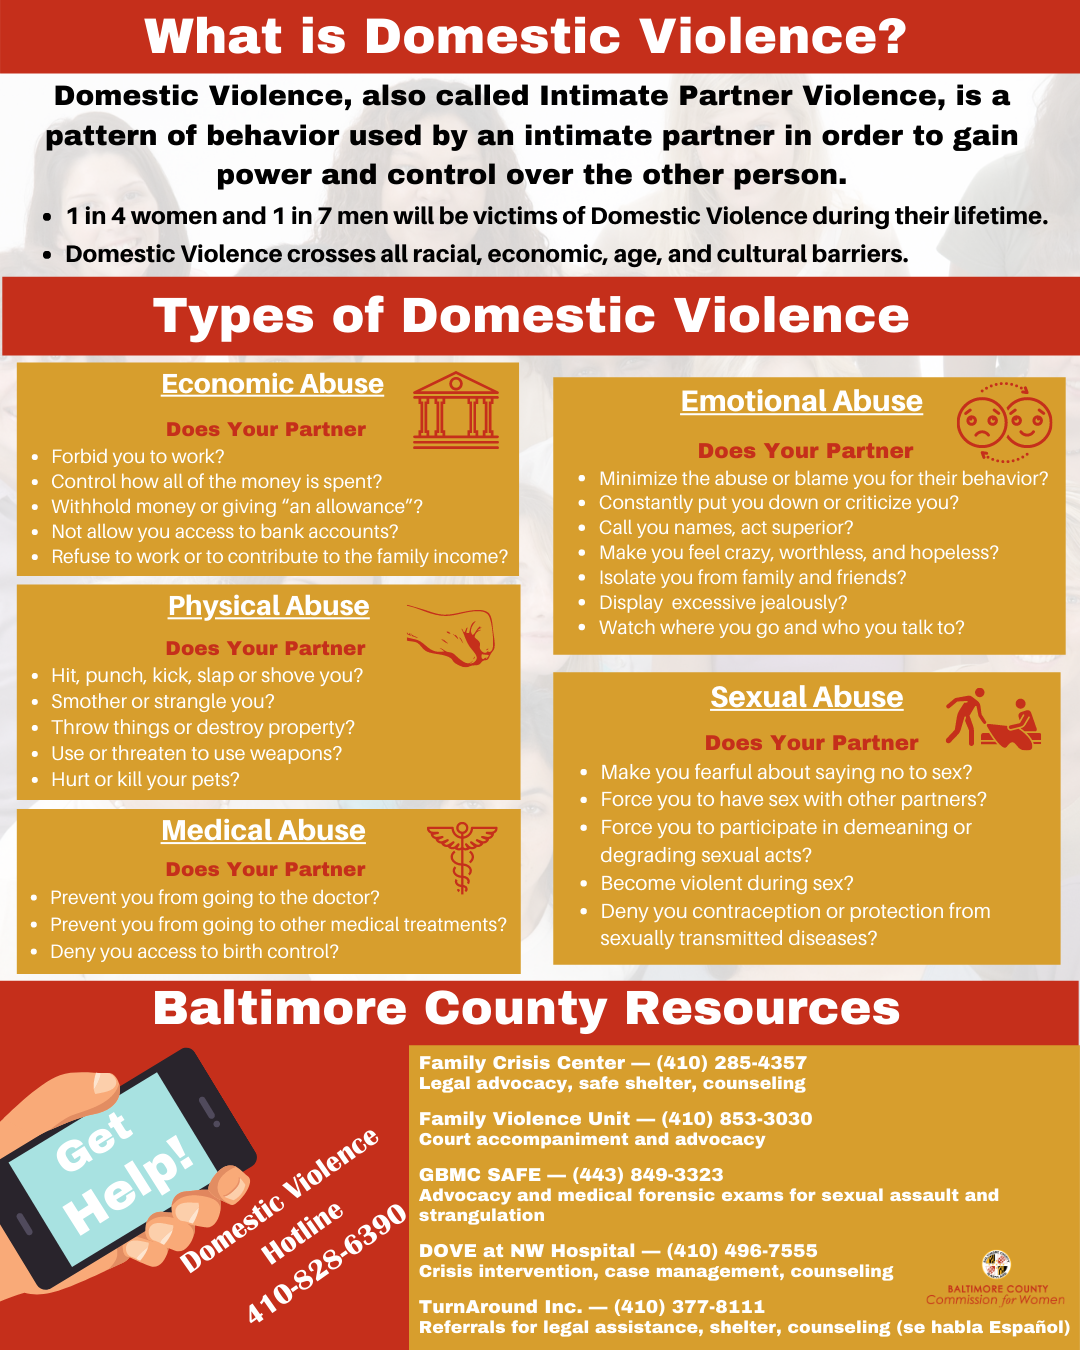 Infographic on Domestic Violence Resources in Baltimore County